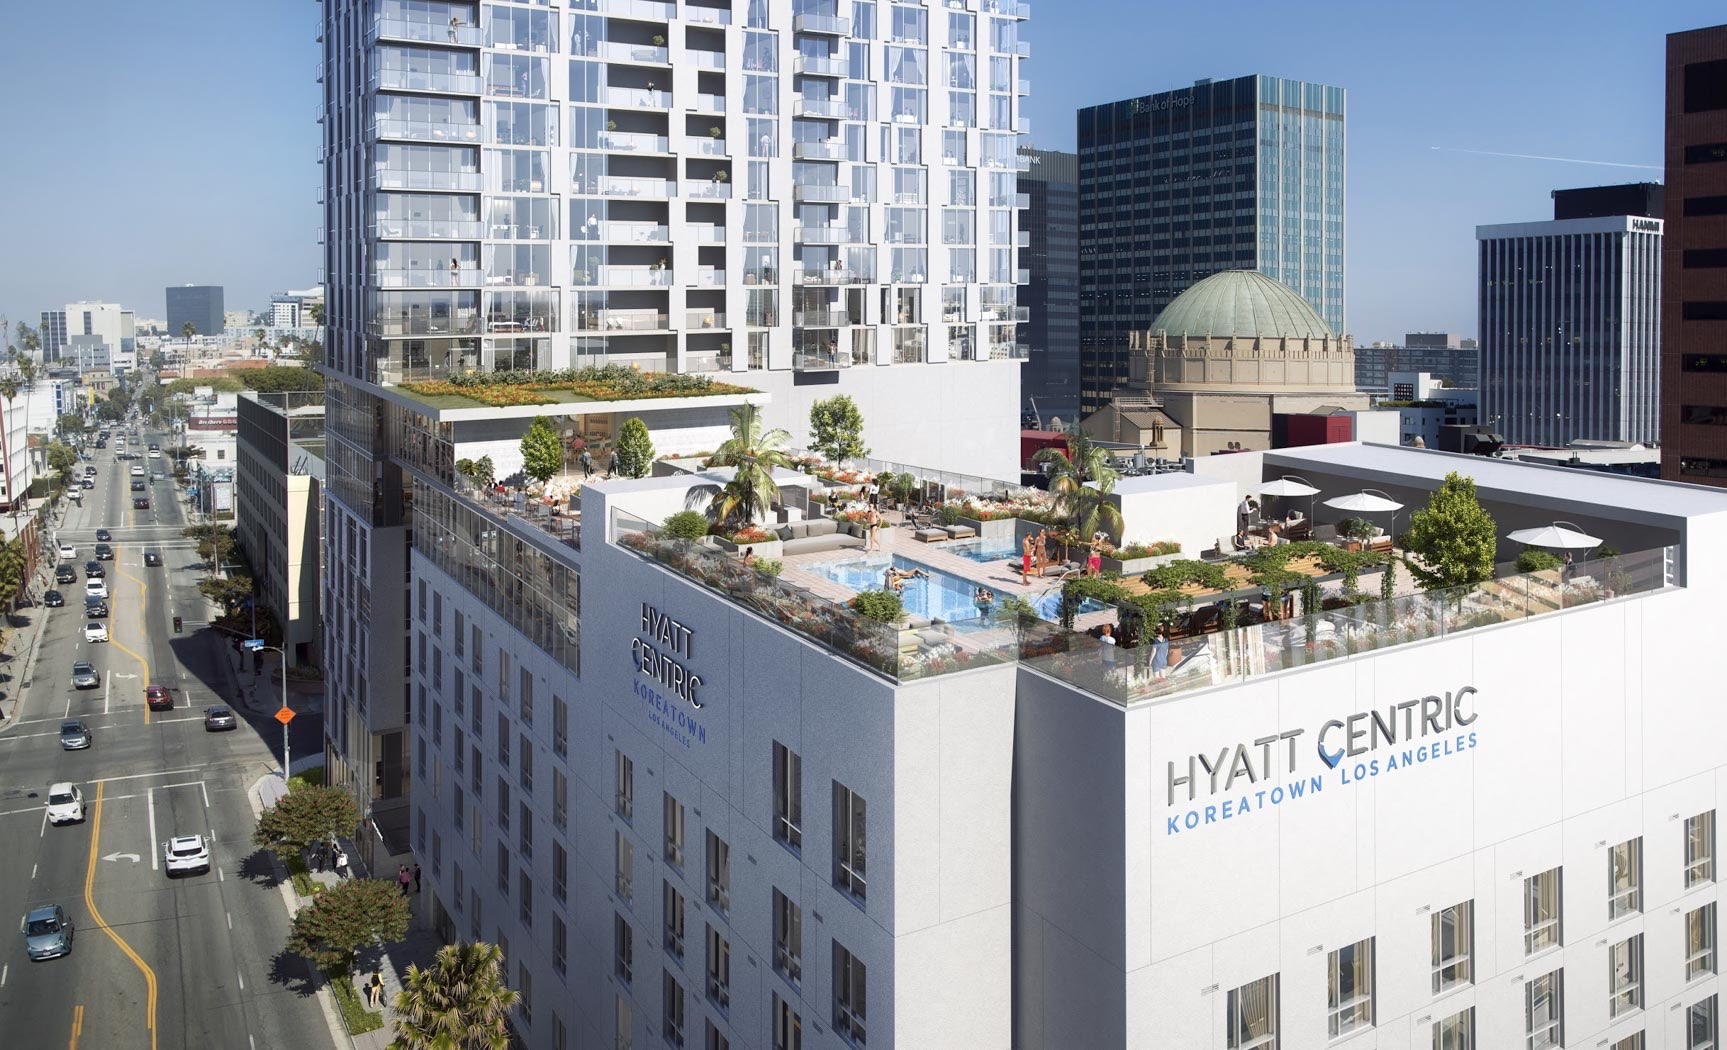 Aerial shot of rooftop pool of Hyatt Centric